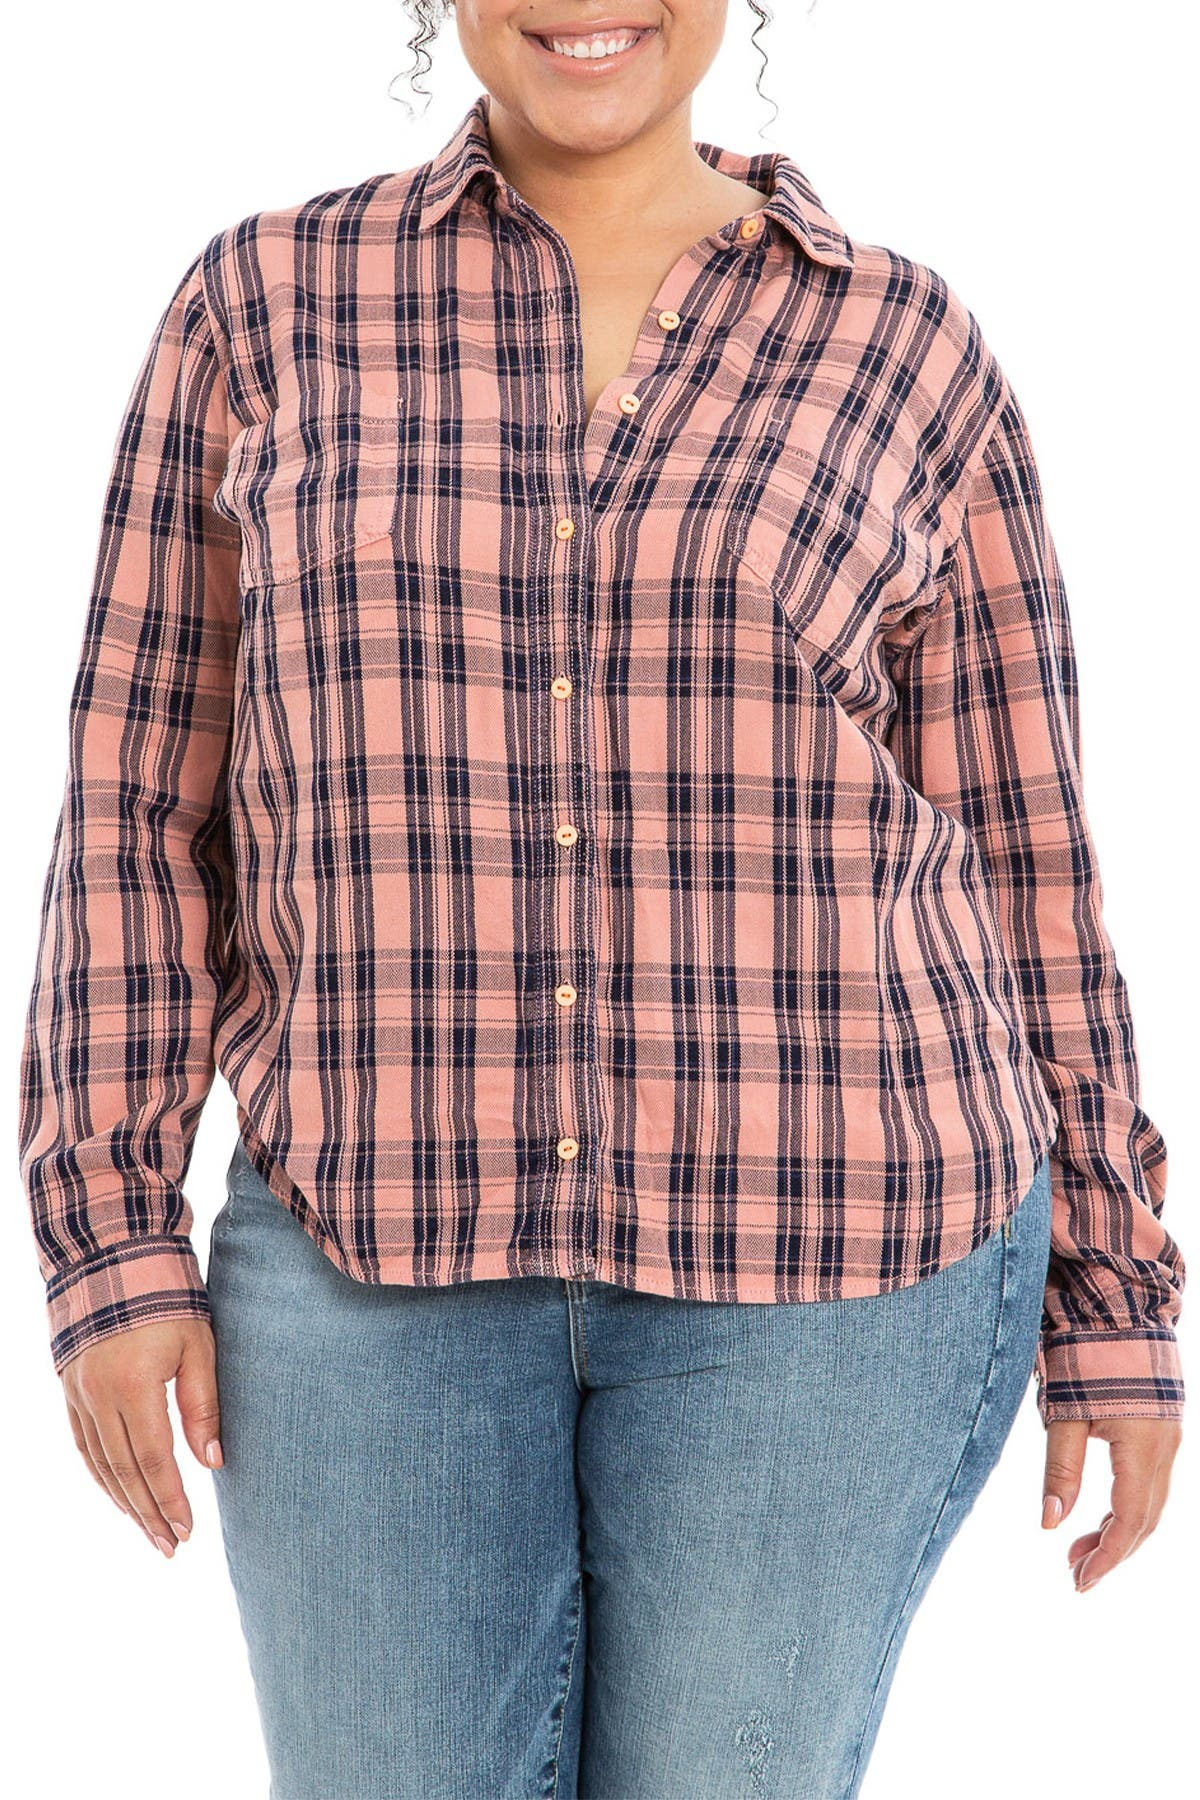 Slink Jeans Shirts PLAID WESTERN SHIRT